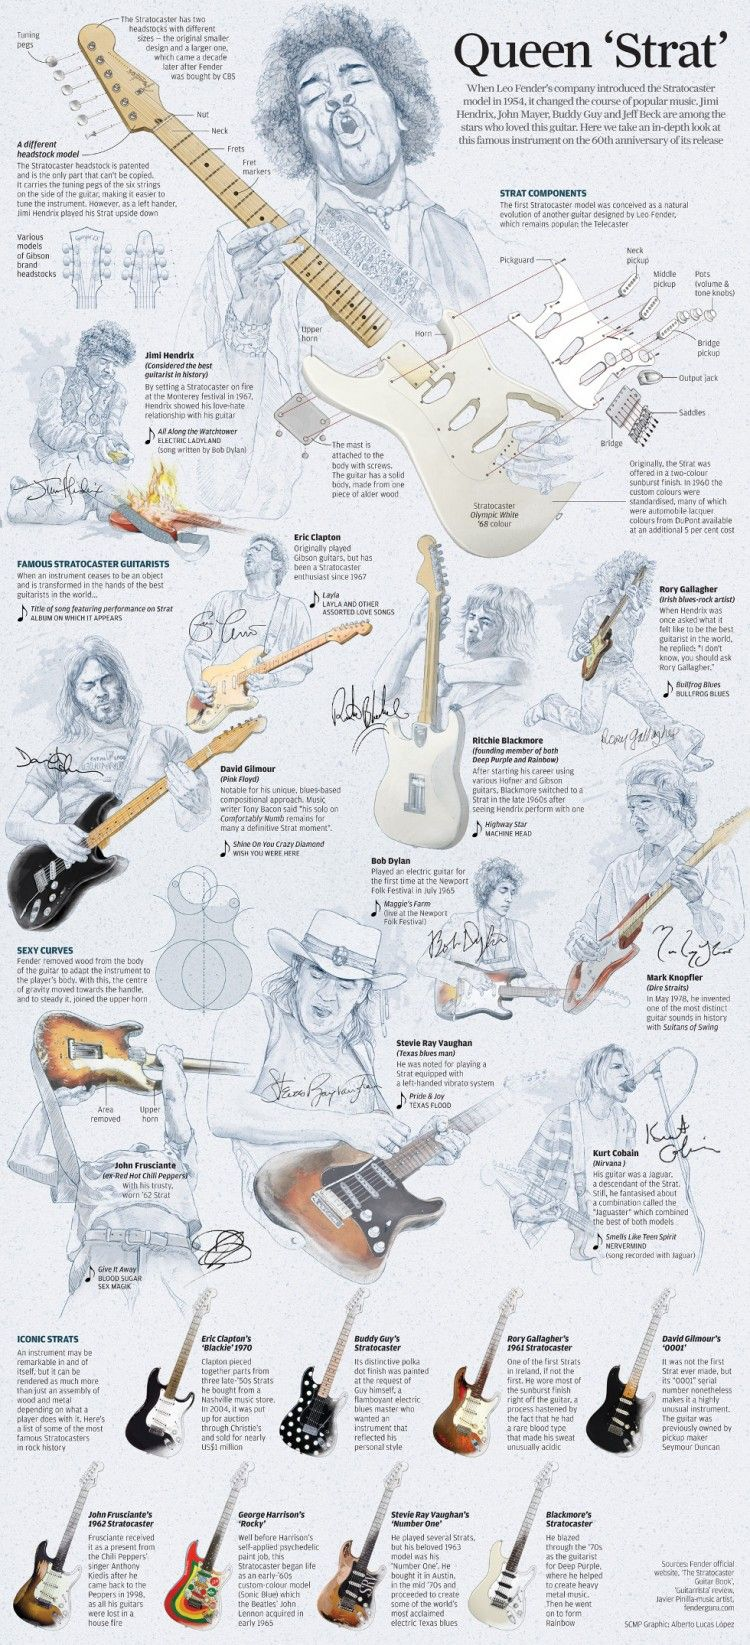 Bullfrog Blues Strat Guitar Wiring Diagram Libraries Original Stratocaster Librarystory Of The Infographic By Alberto Lucas